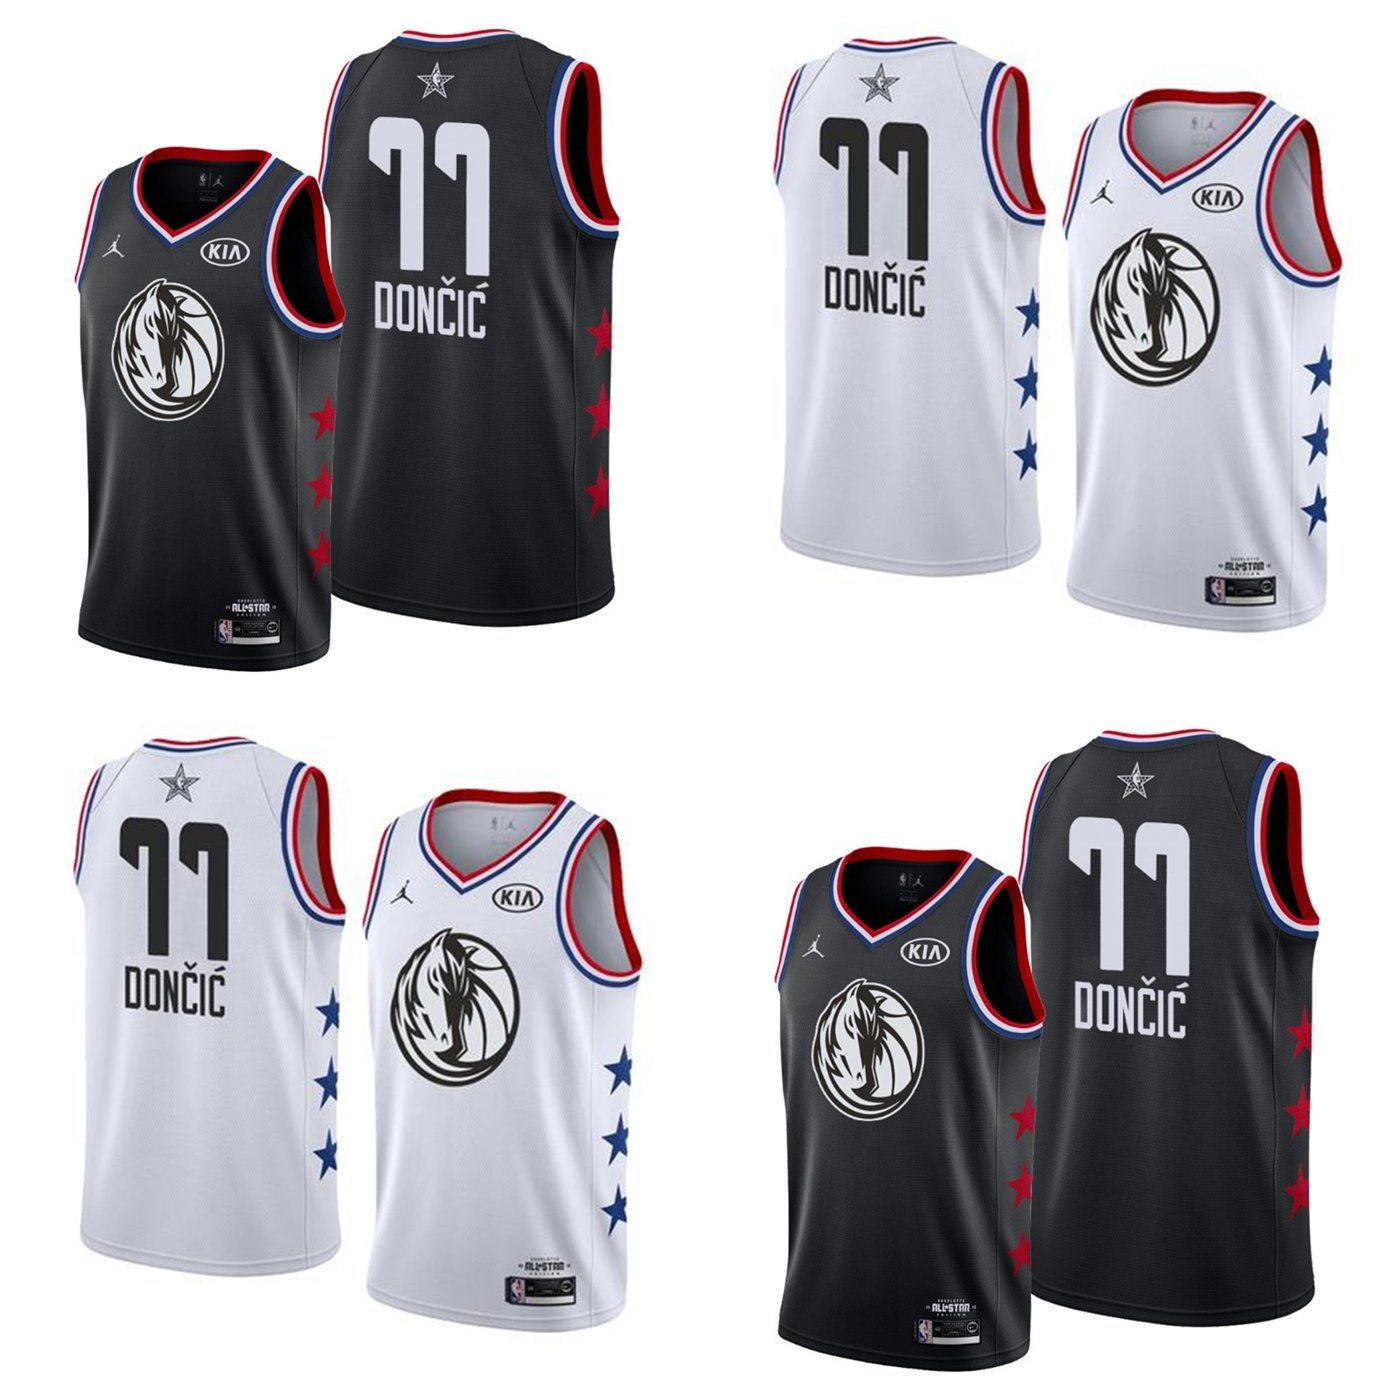 newest 88ca5 d48b8 [Hot Item] Wholesale 2019 N-B-a All-Star 77 Luka Doncic Replica Basketball  Jerseys